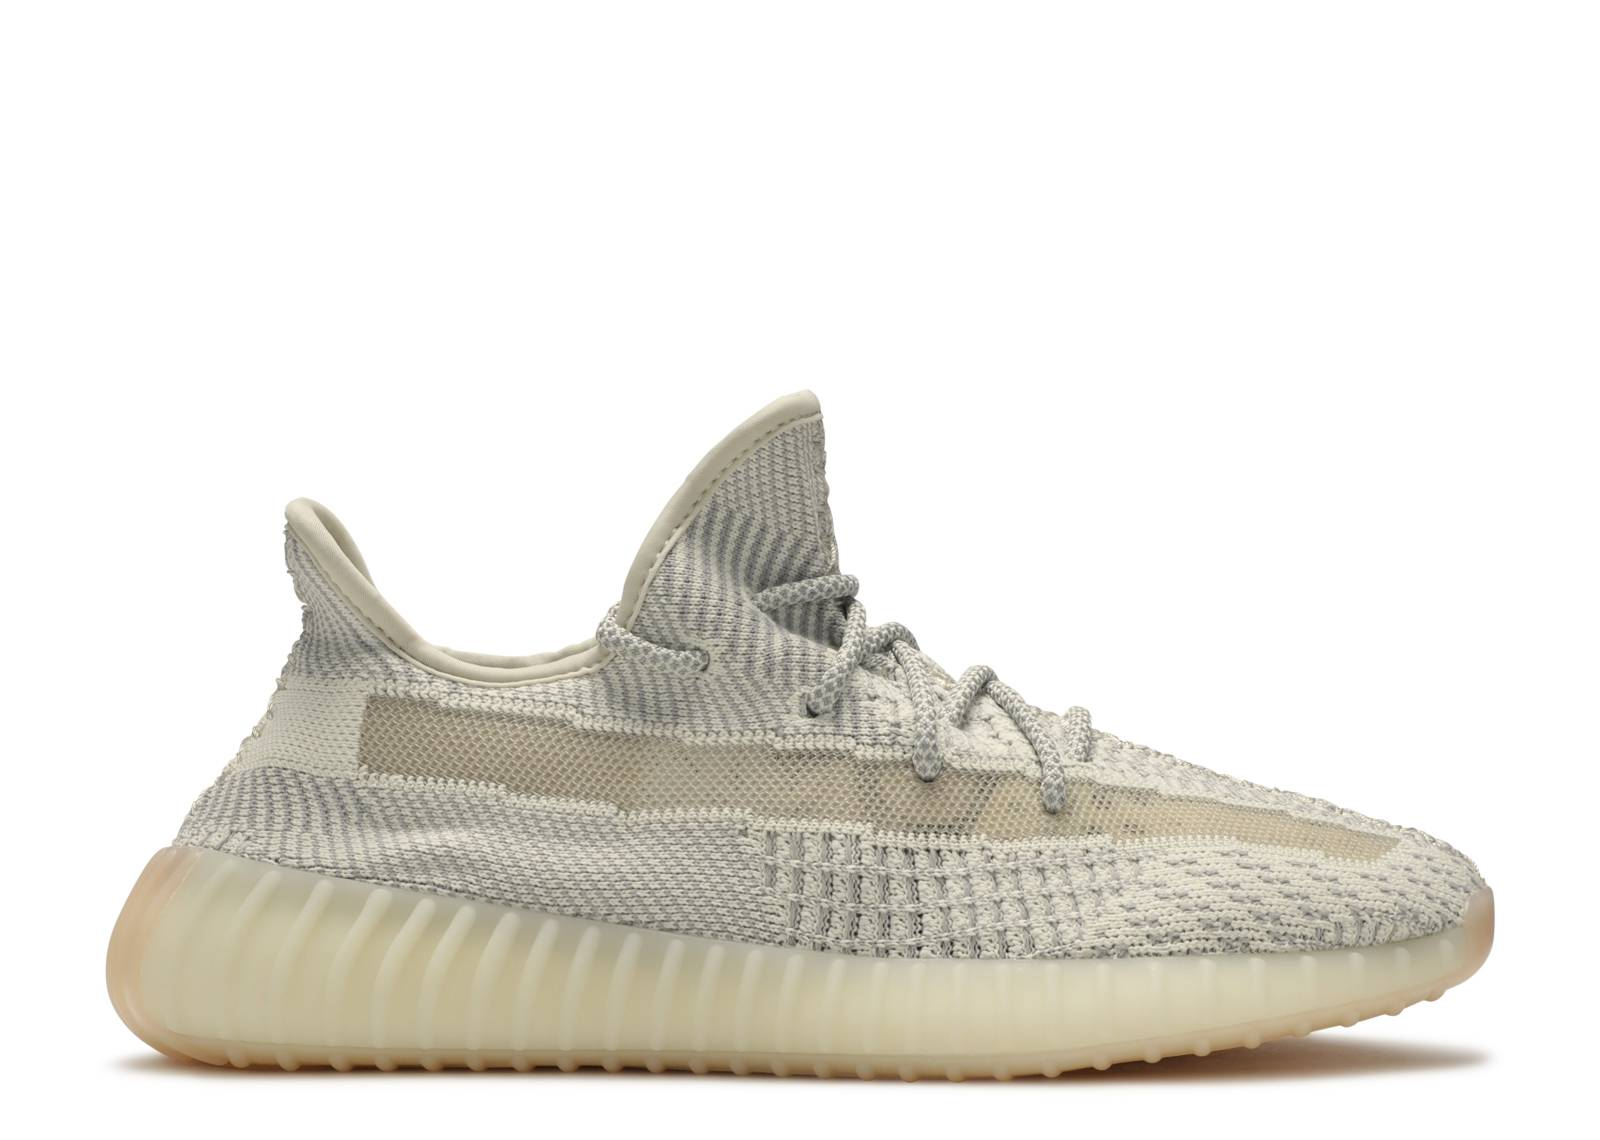 best website 19811 7fe8b Adidas Yeezy Shoes for Men, Women & Infants | Flight Club